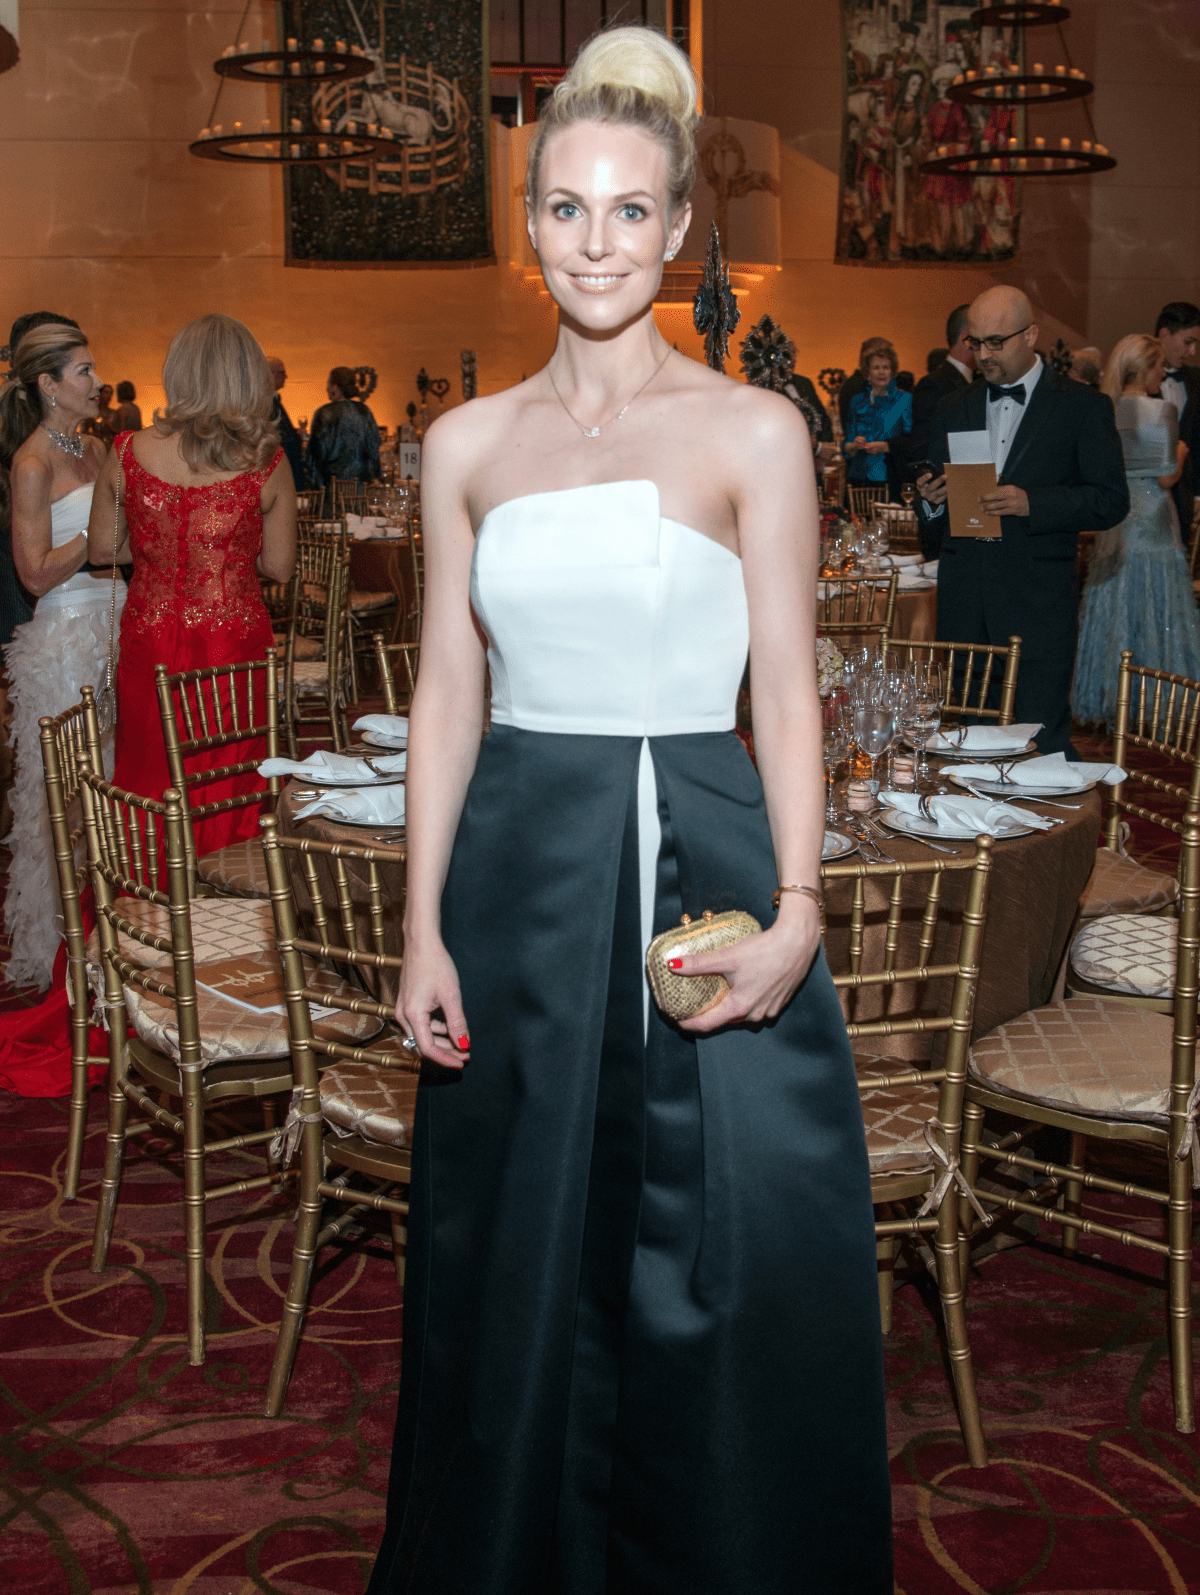 Houston, Ballet Ball gowns, Feb 2017, Kathleen Jennings in Halston Heritage